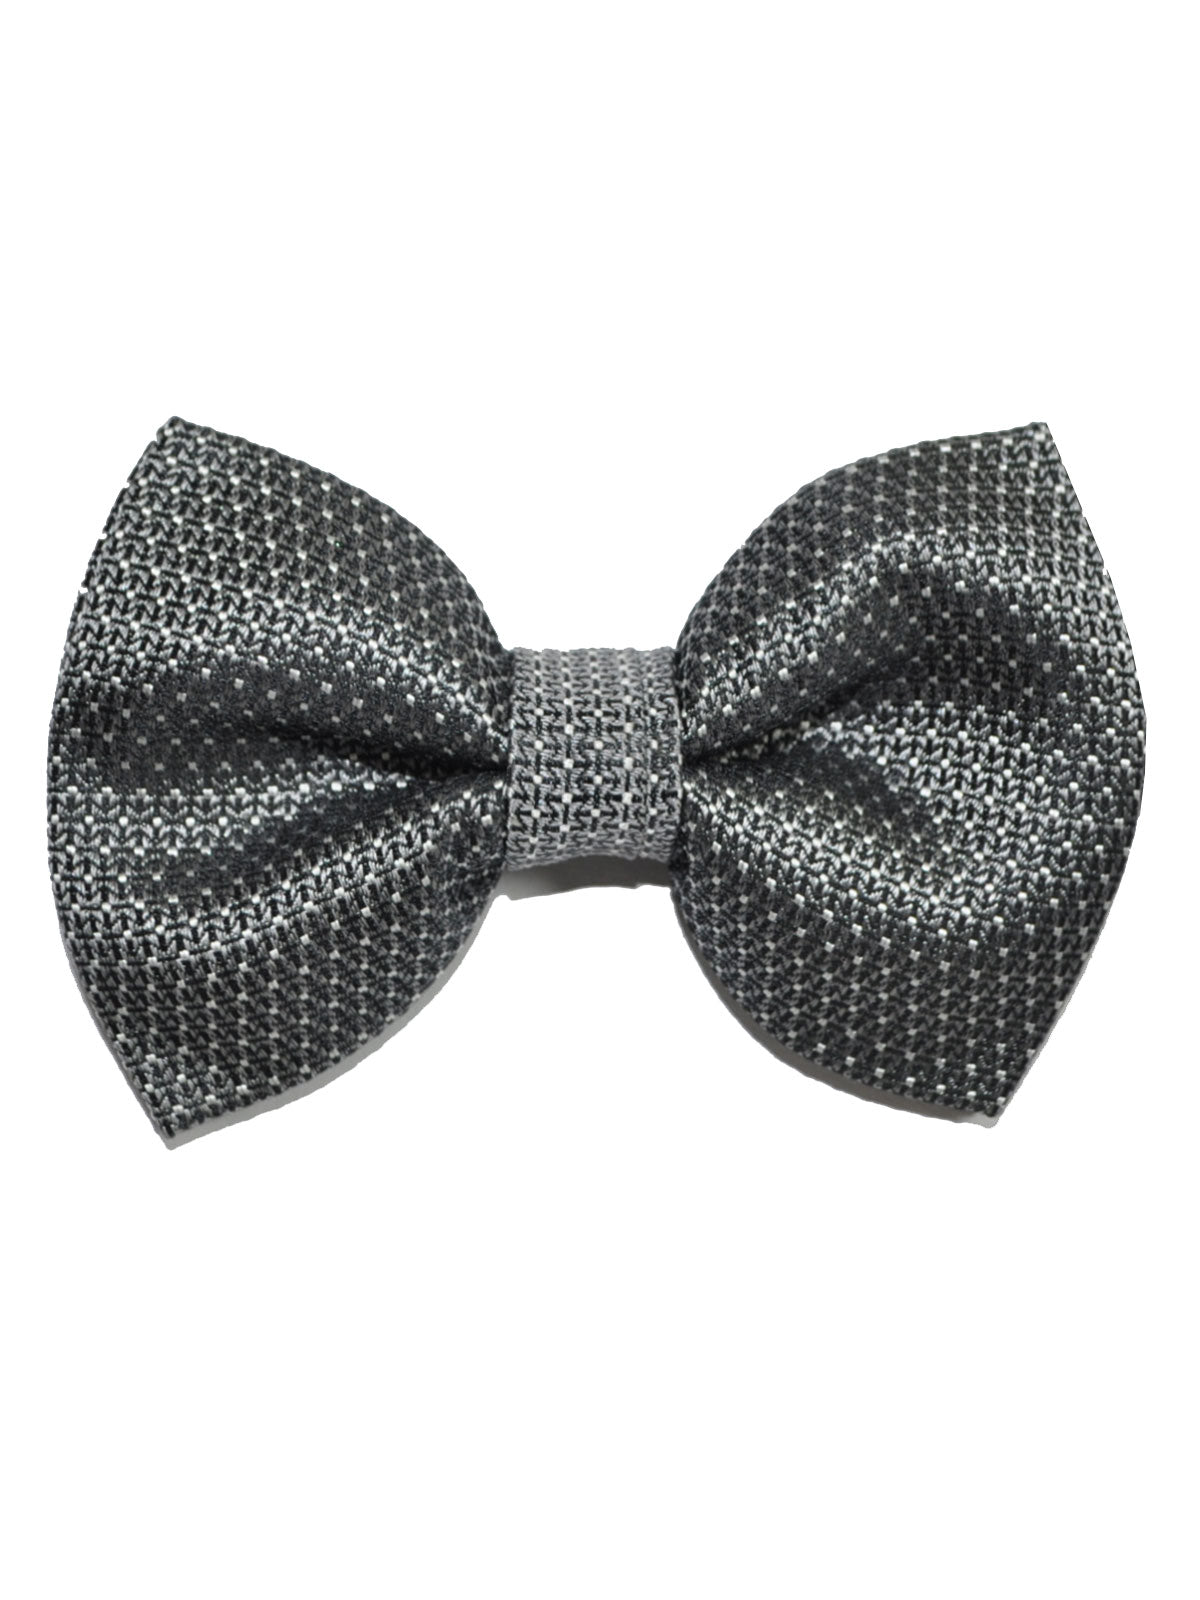 46d2ae86cd66 Tom Ford Silk Bow Tie Charcoal Gray Silver Mini Dots - Tie Deals